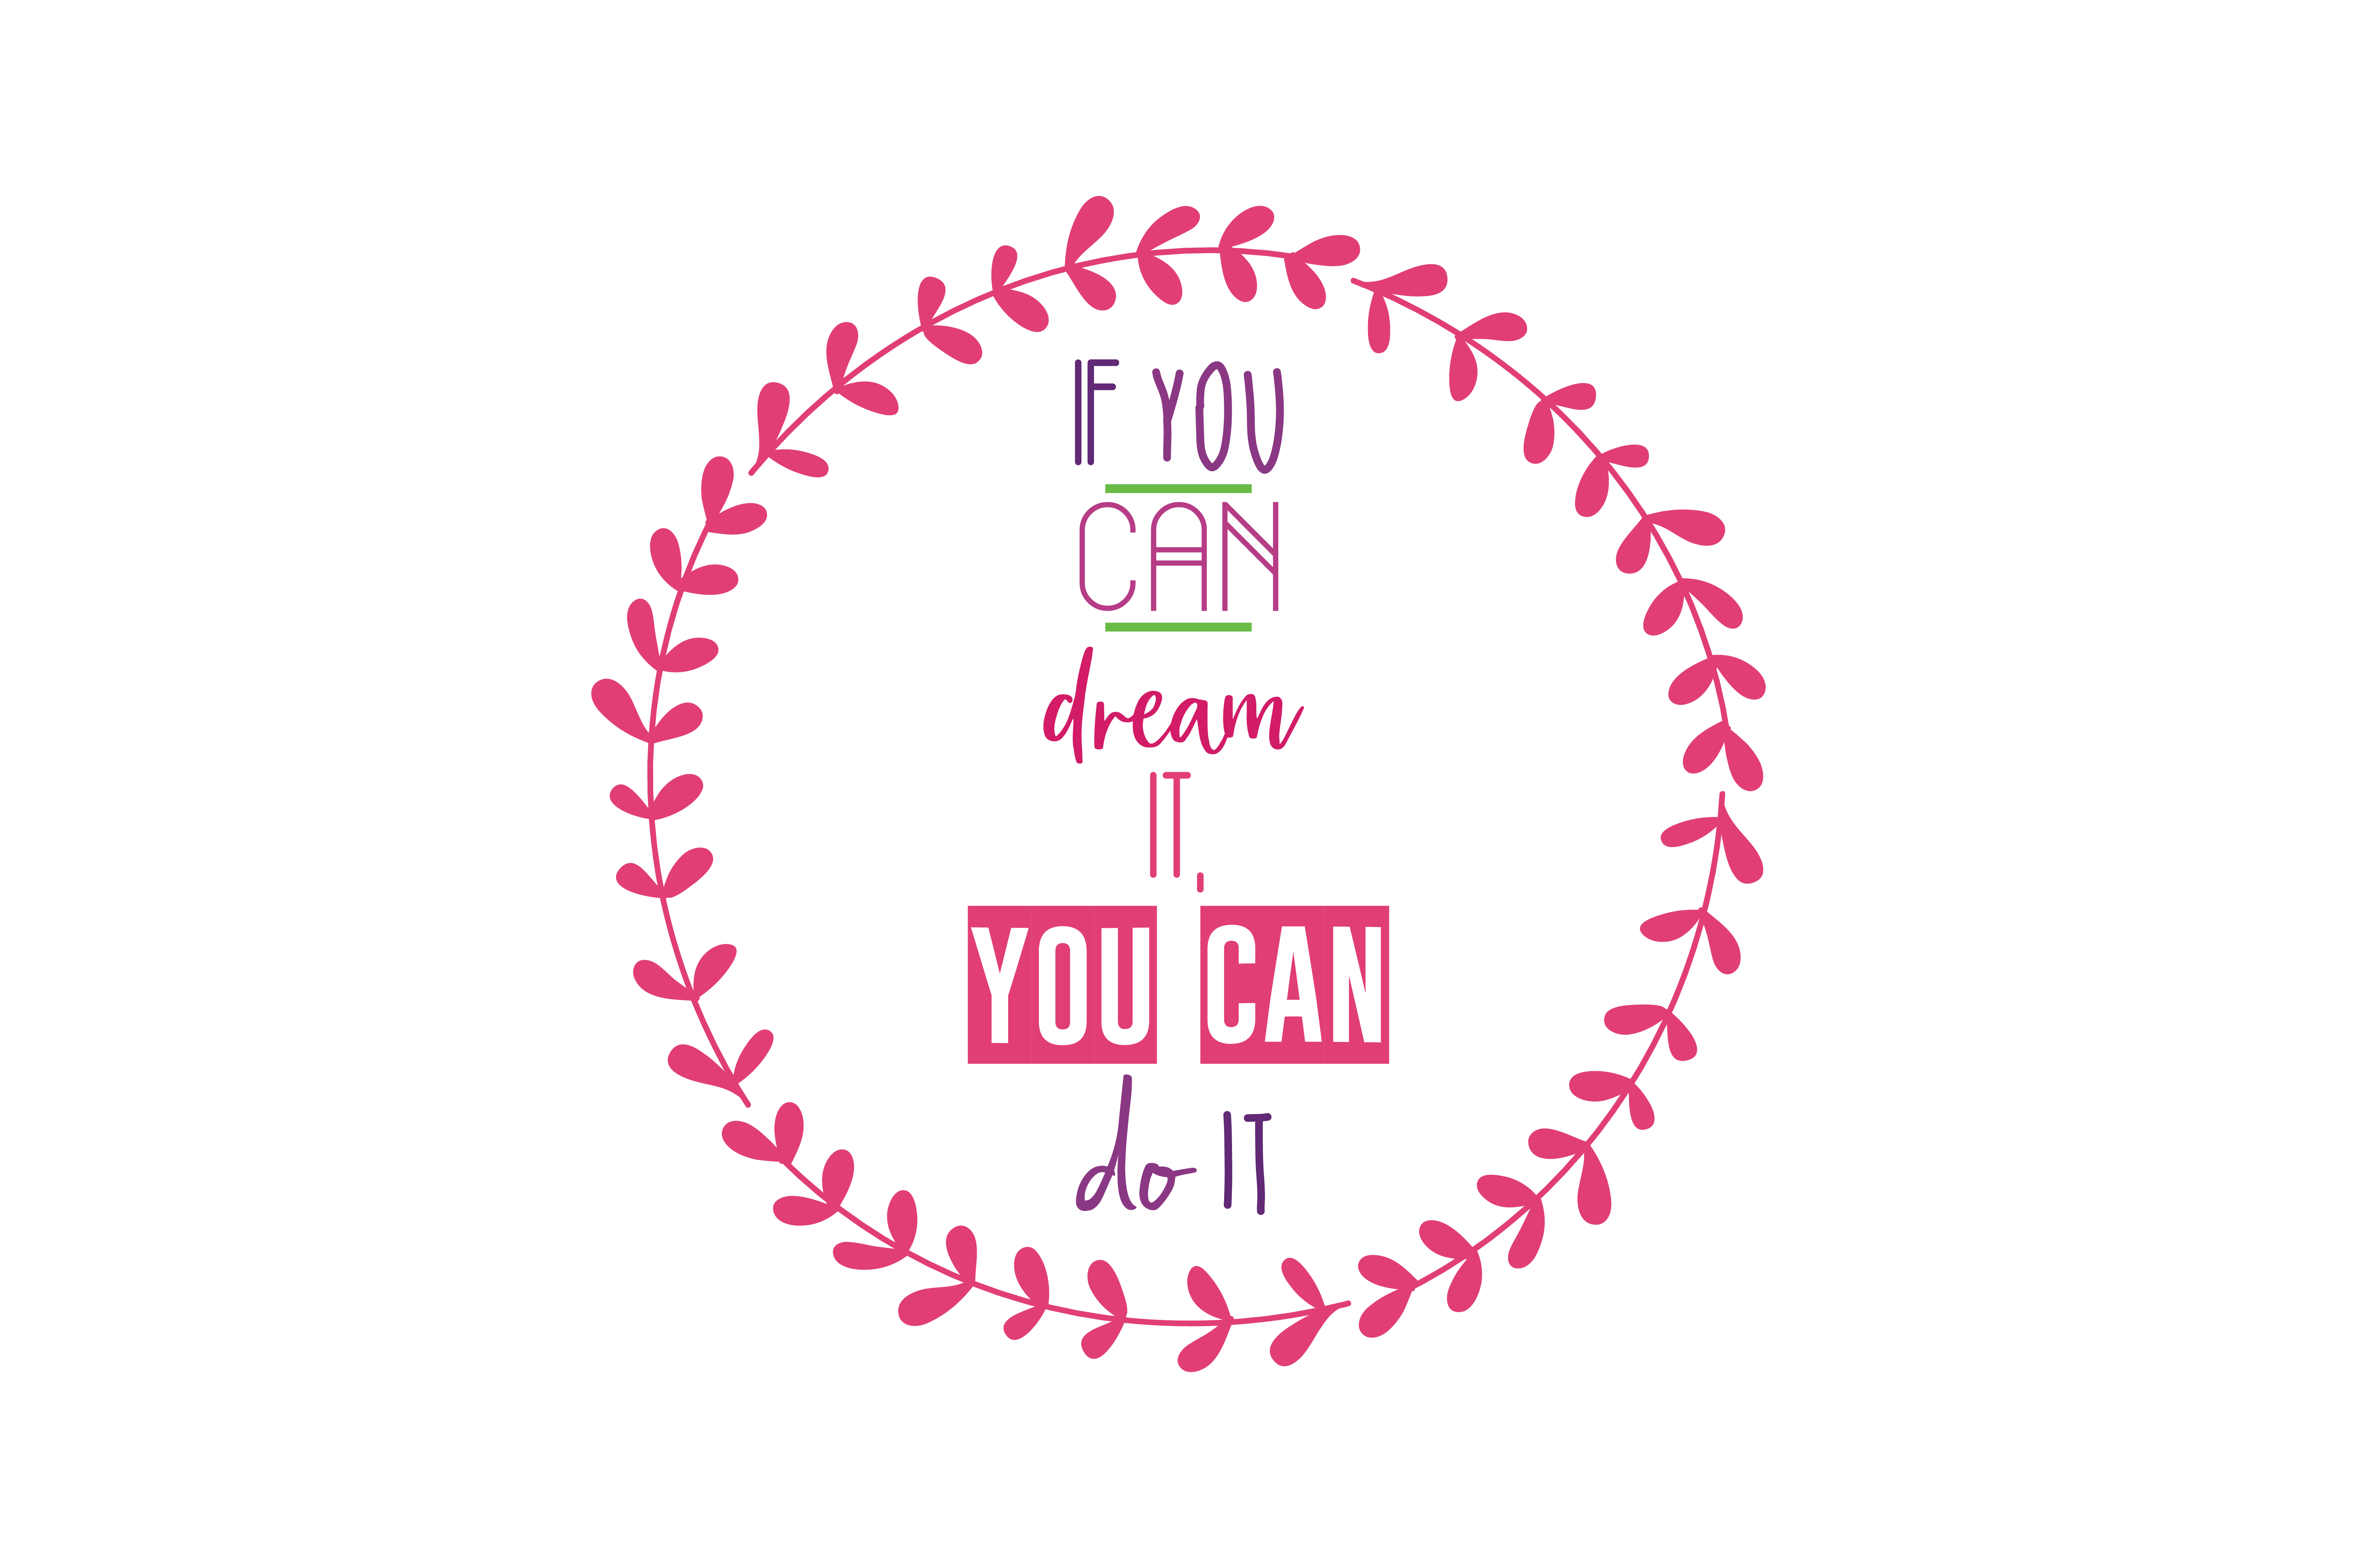 Download Free If You Dream It You Can Do It Svg Cut Quote Graphic By Thelucky Creative Fabrica for Cricut Explore, Silhouette and other cutting machines.